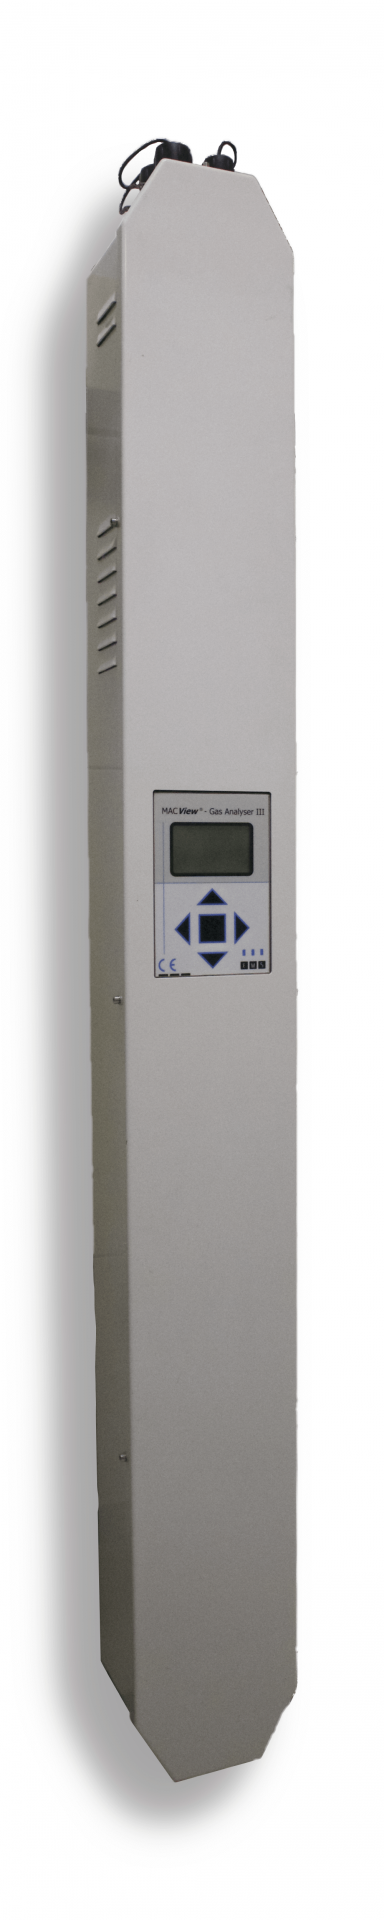 Macview Greenhouse Gas Analyser Environmental Monitoring